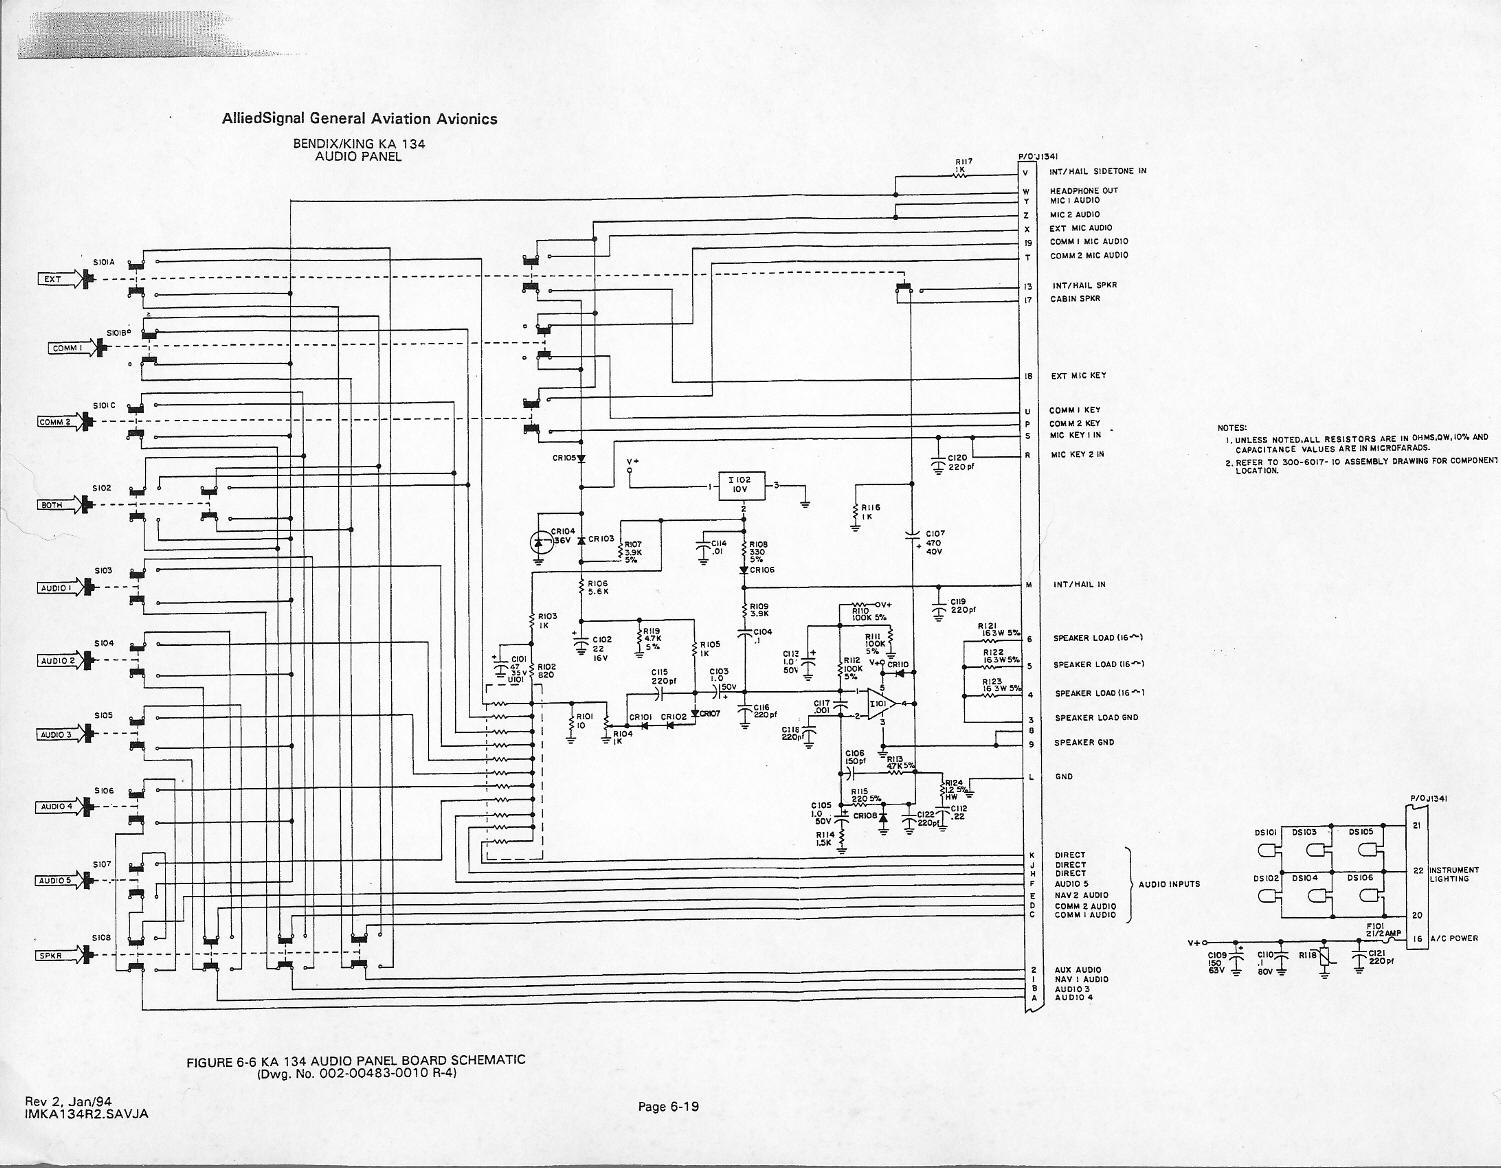 ka134_r4 first flight prep king ka 134 audio panel wiring diagram at n-0.co